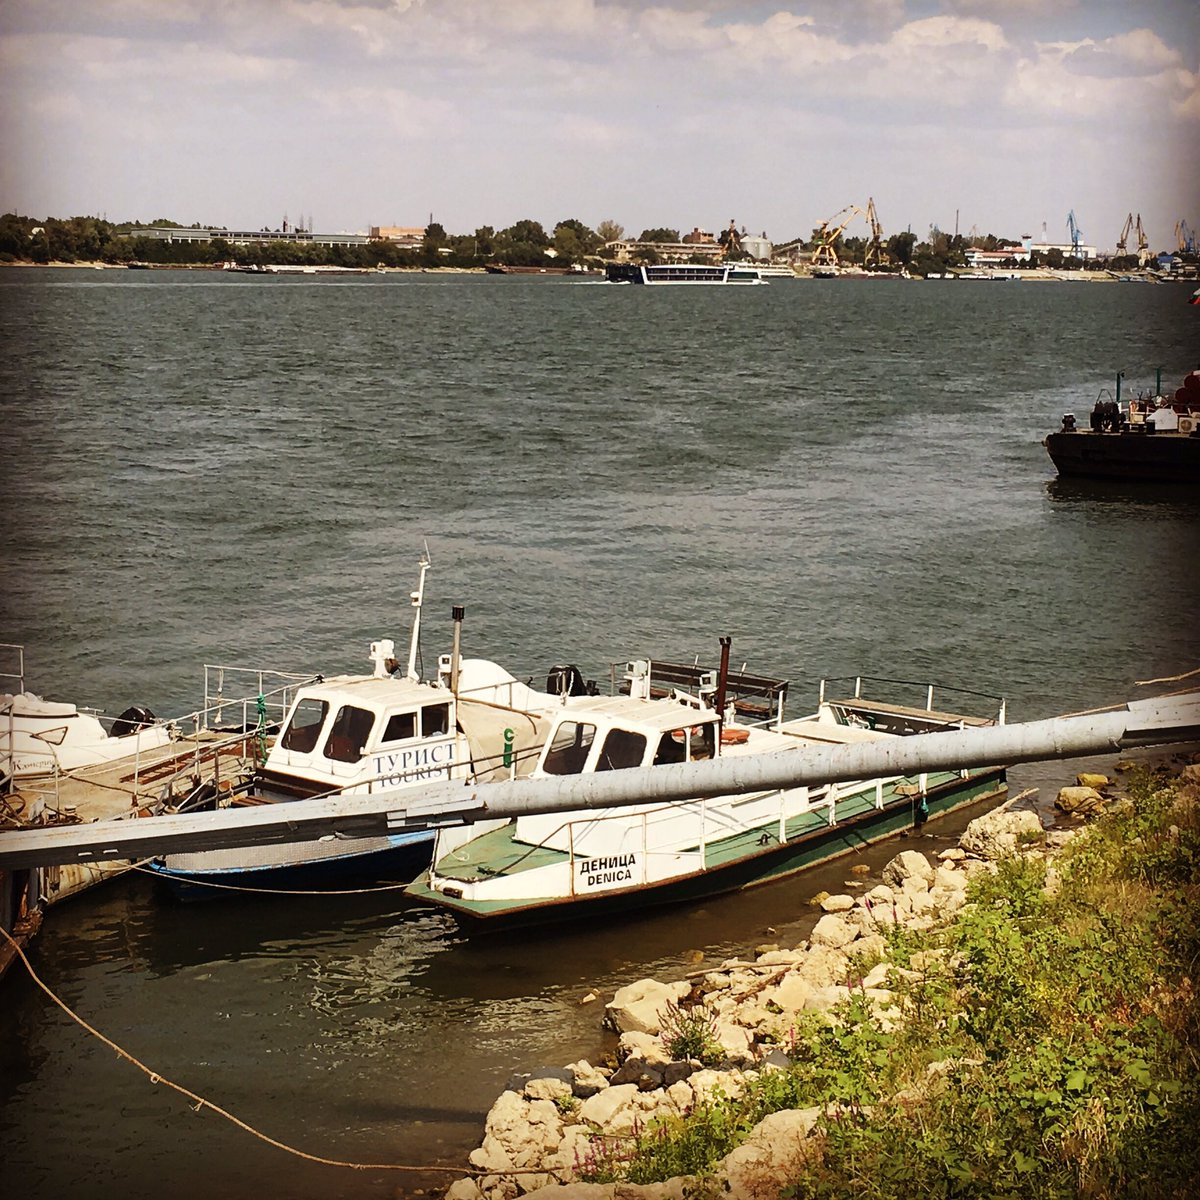 Come see a magnificent Danube and join the #rusesummerfreetour experience - tomorrow @ 6pm at the Statue of Liberty 🇧🇬🔆#ruse #bulgaria